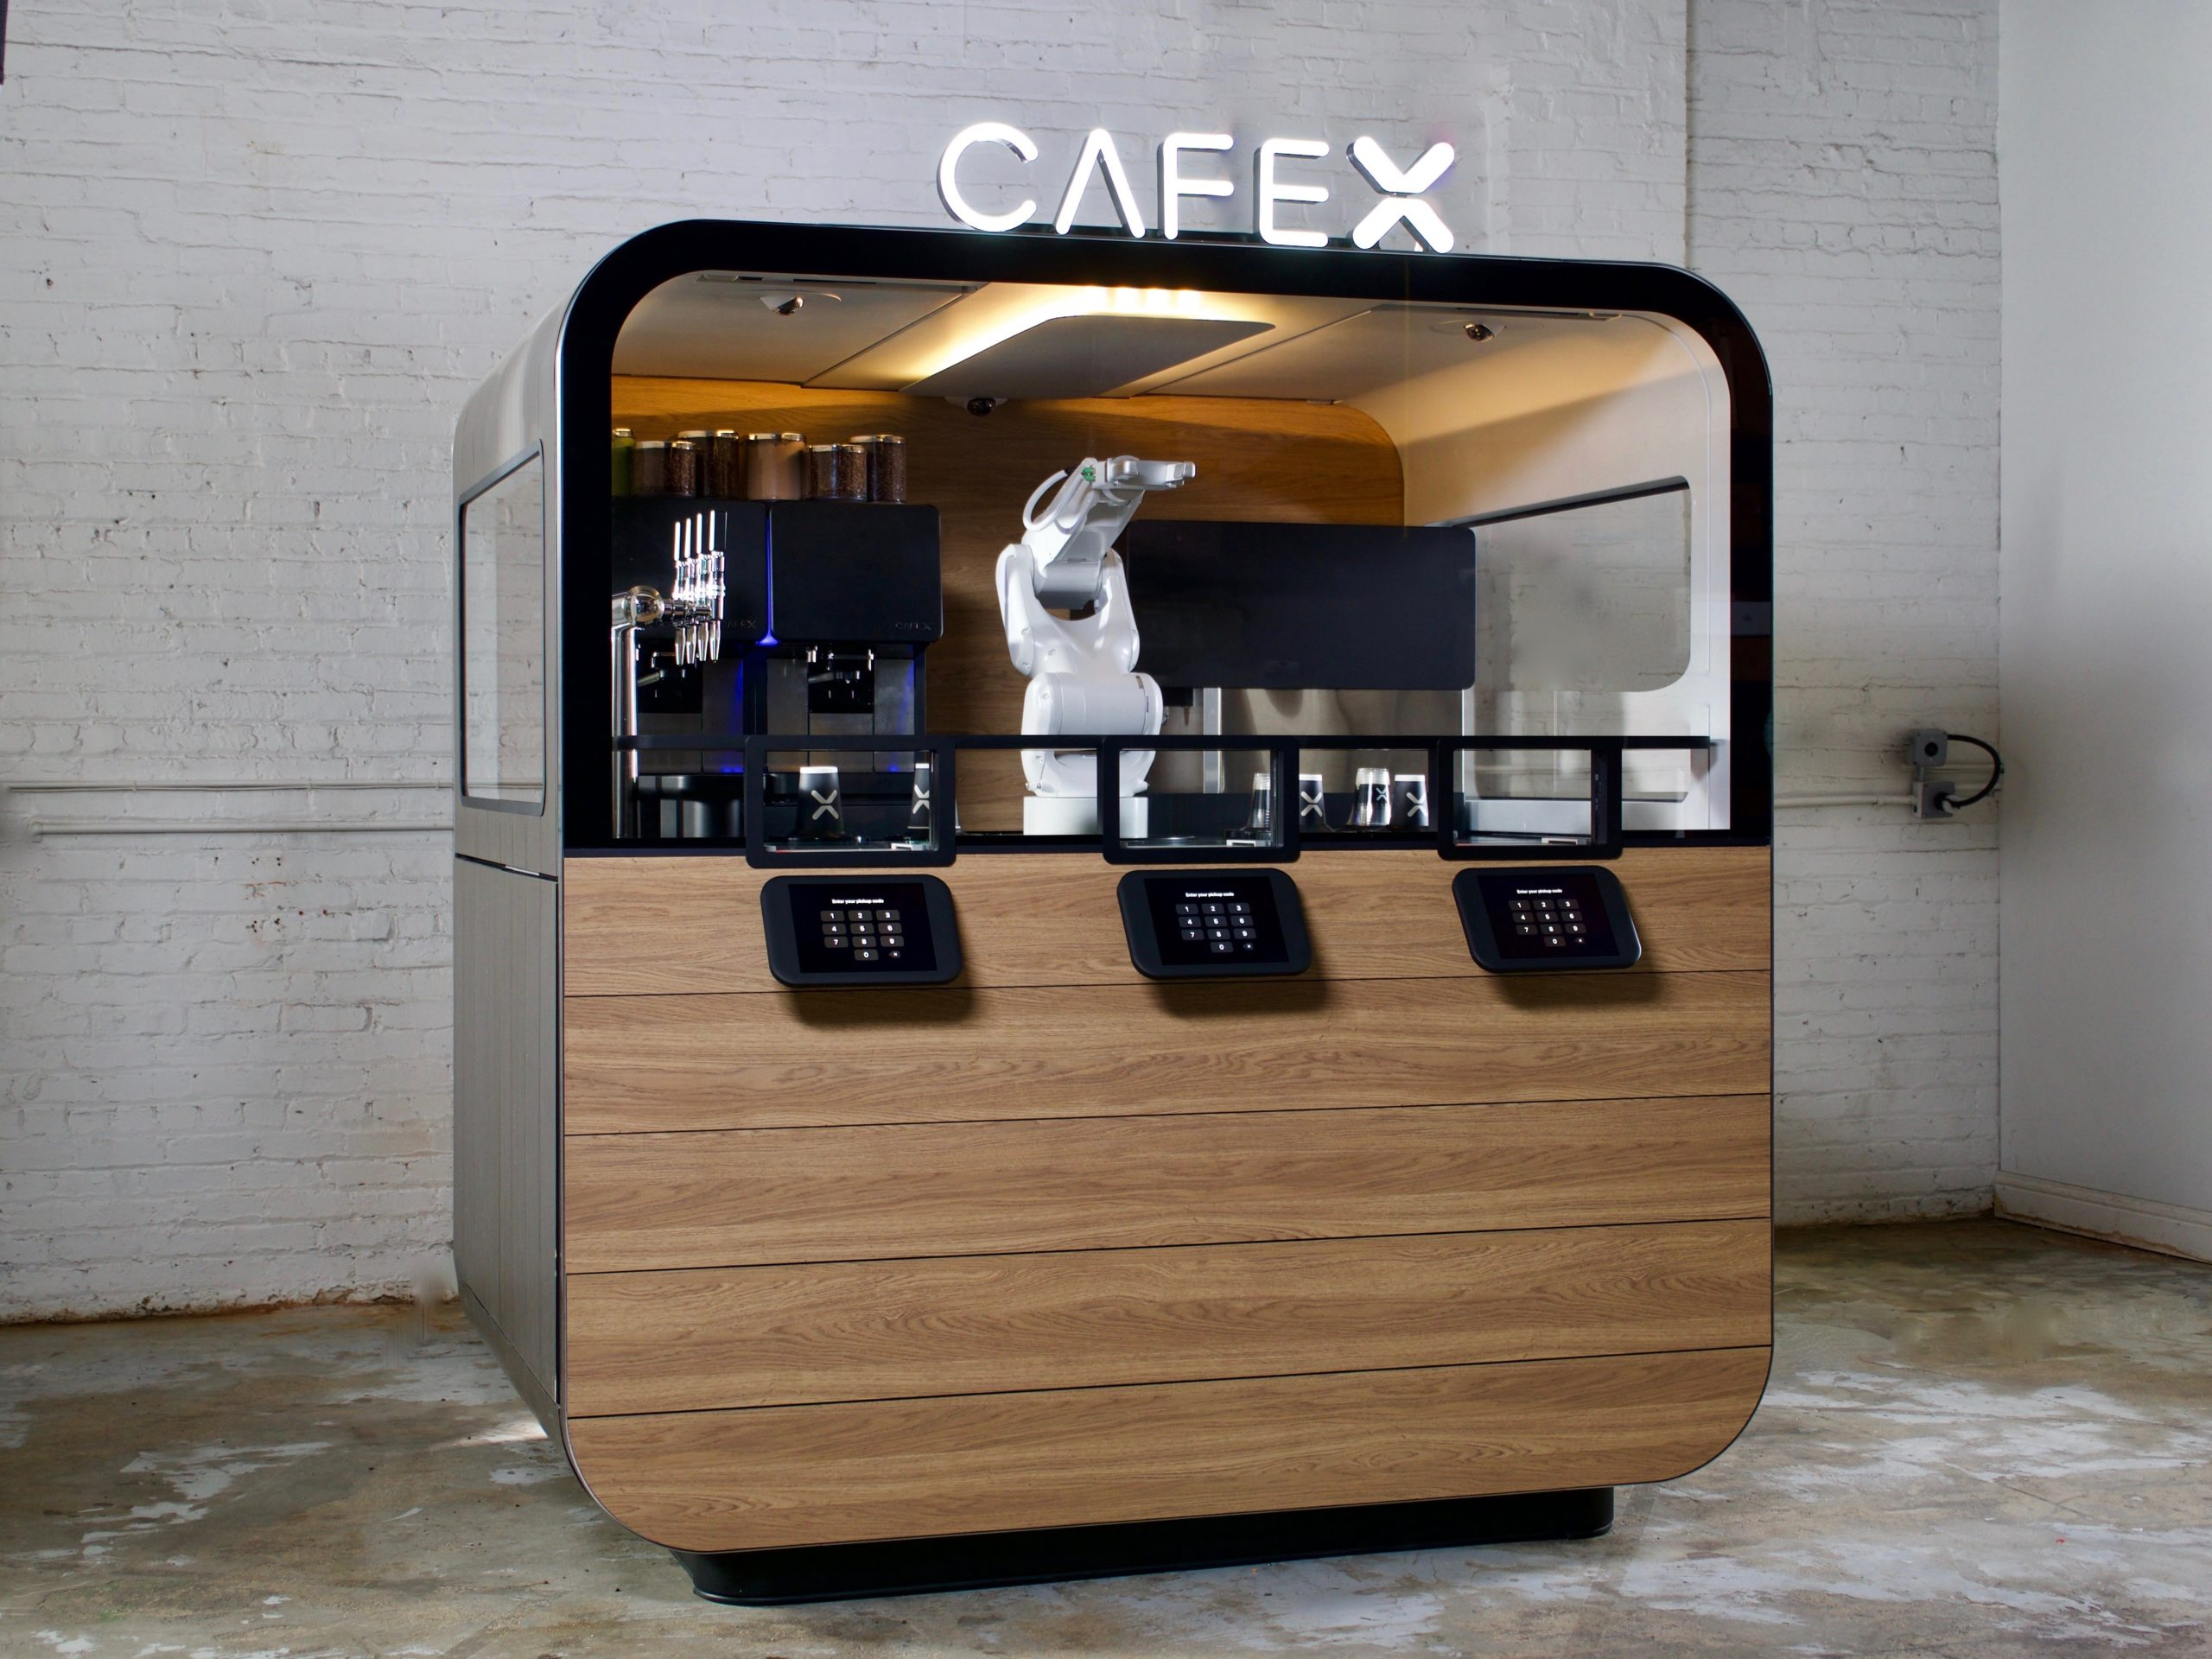 Cafe X Shuts Down its Three Downtown San Francisco Locations